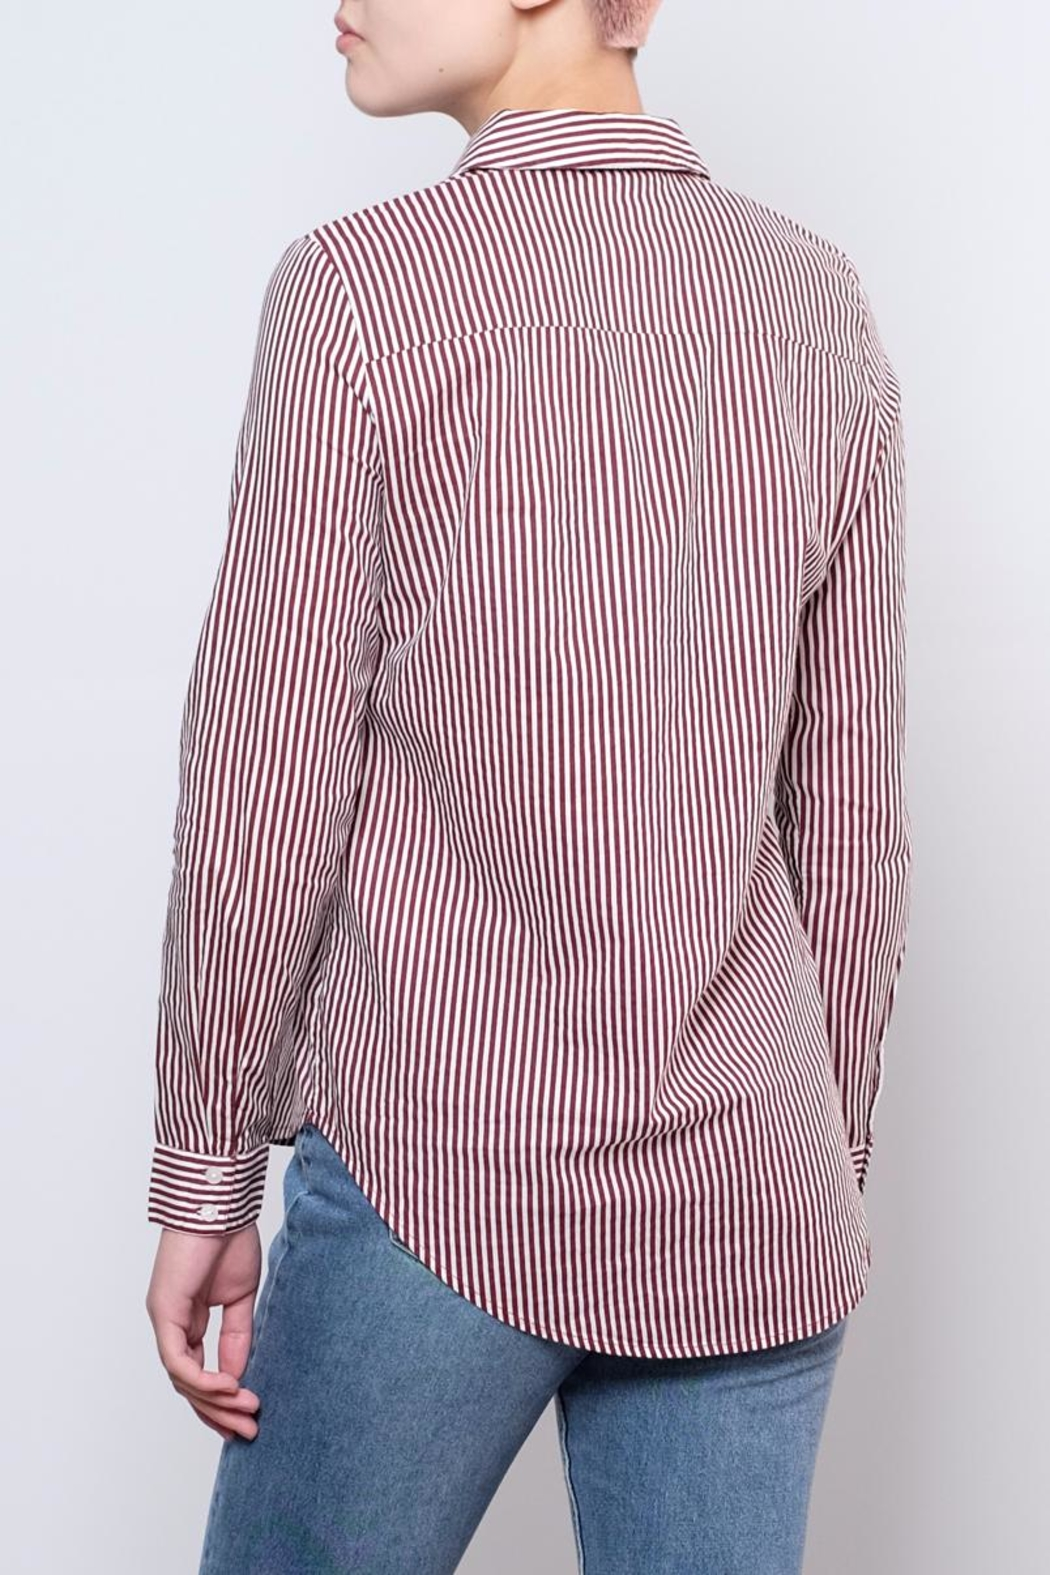 Vero Moda Striped Shirt - Side Cropped Image